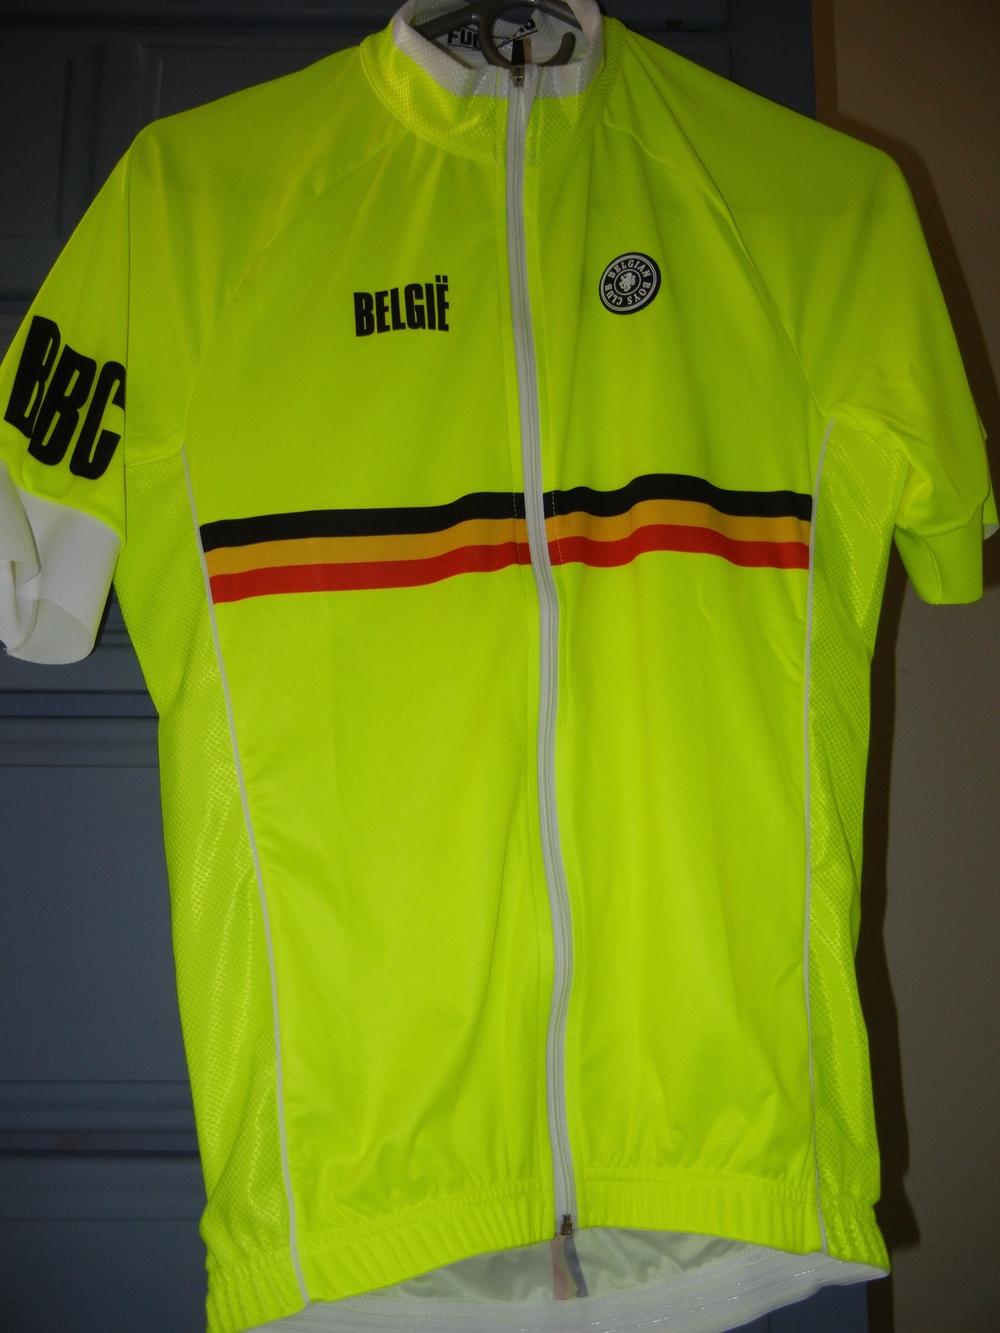 The front of the Belgie jersey.